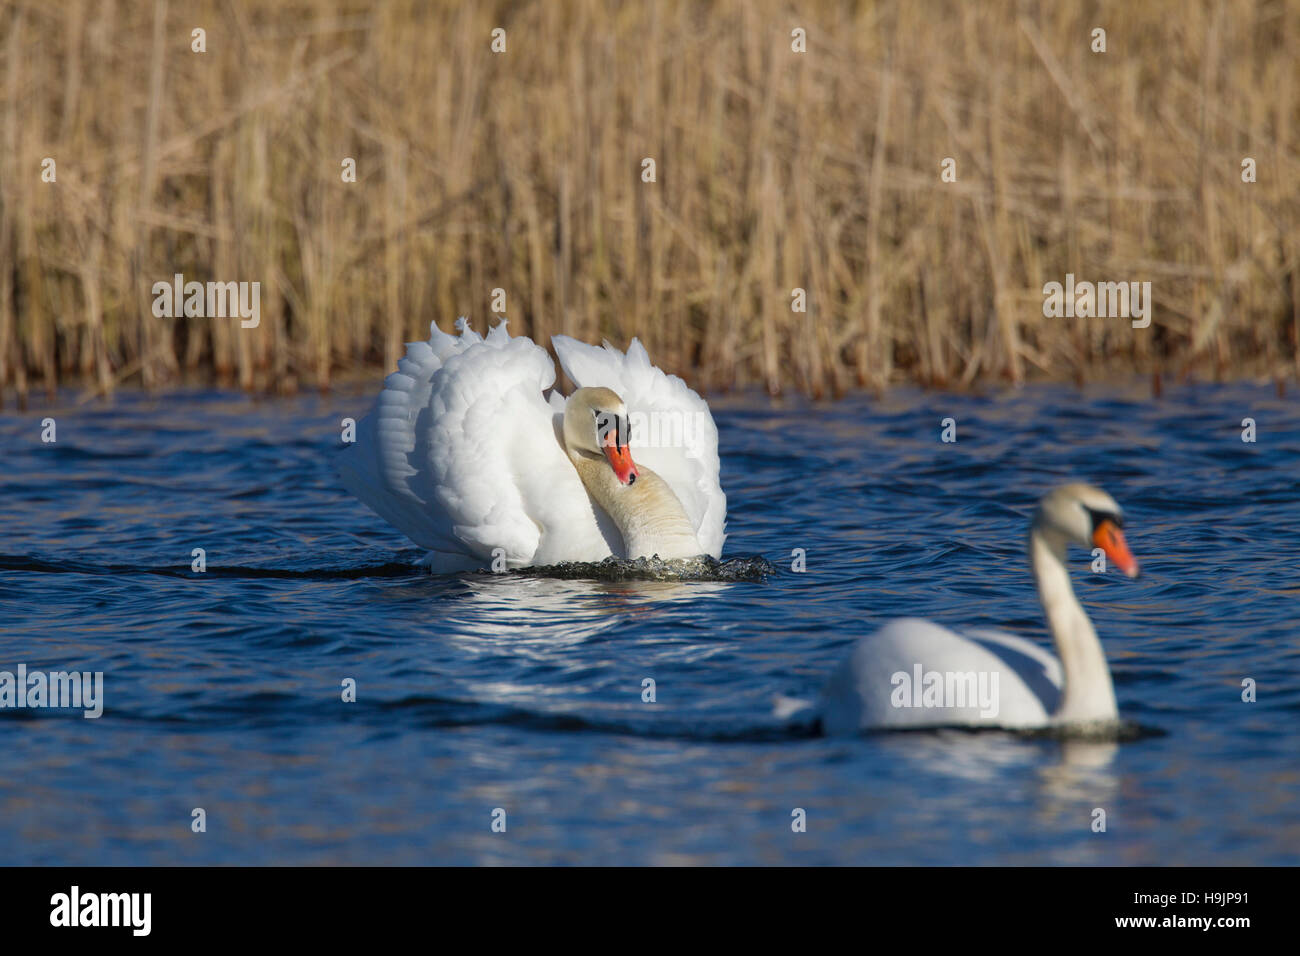 Busking mute swan (Cygnus olor) male in threat display swimming with neck curved back and wings half raised in lake - Stock Image